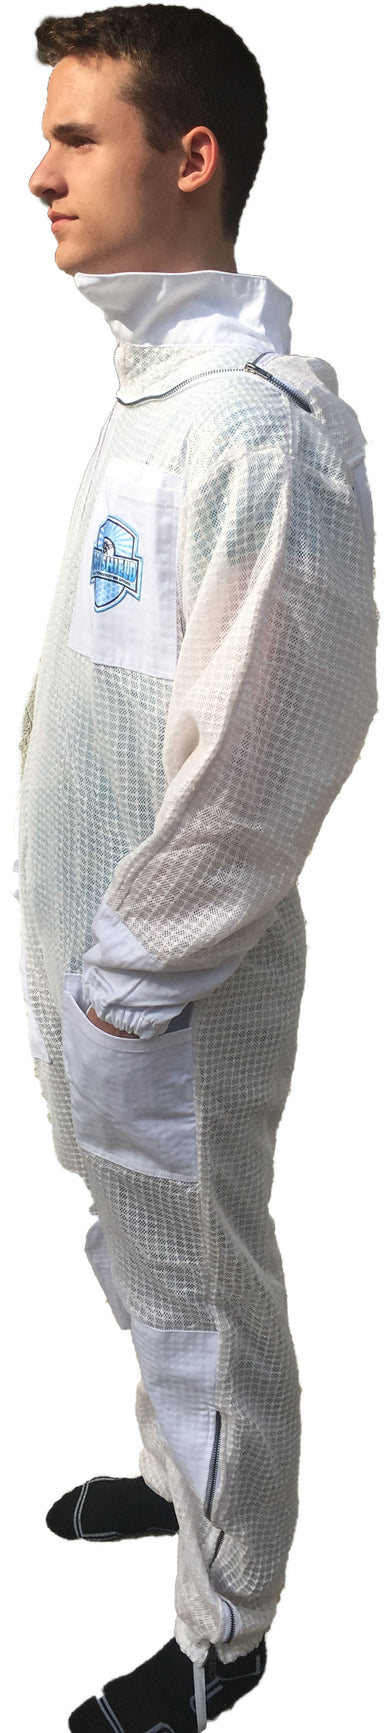 Cool Shield Ventilated Beekeeping Suit X-Large